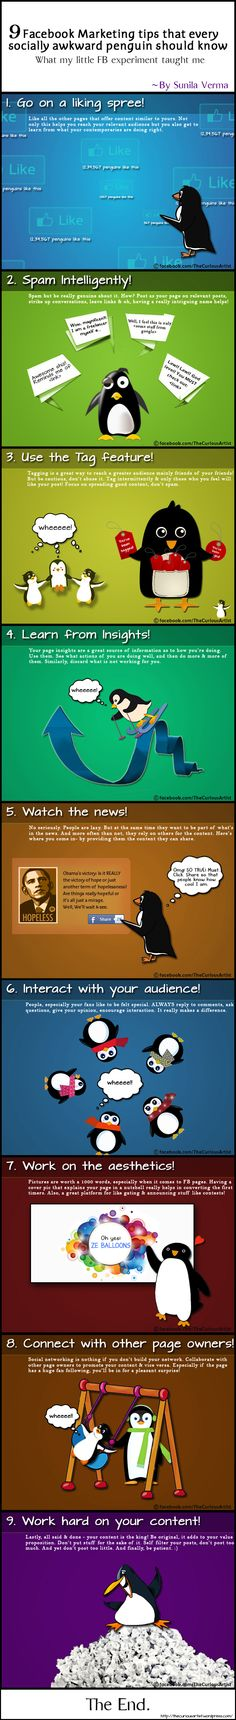 9 FaceBok marketing tips that every socially awkward penguin should know #infographic